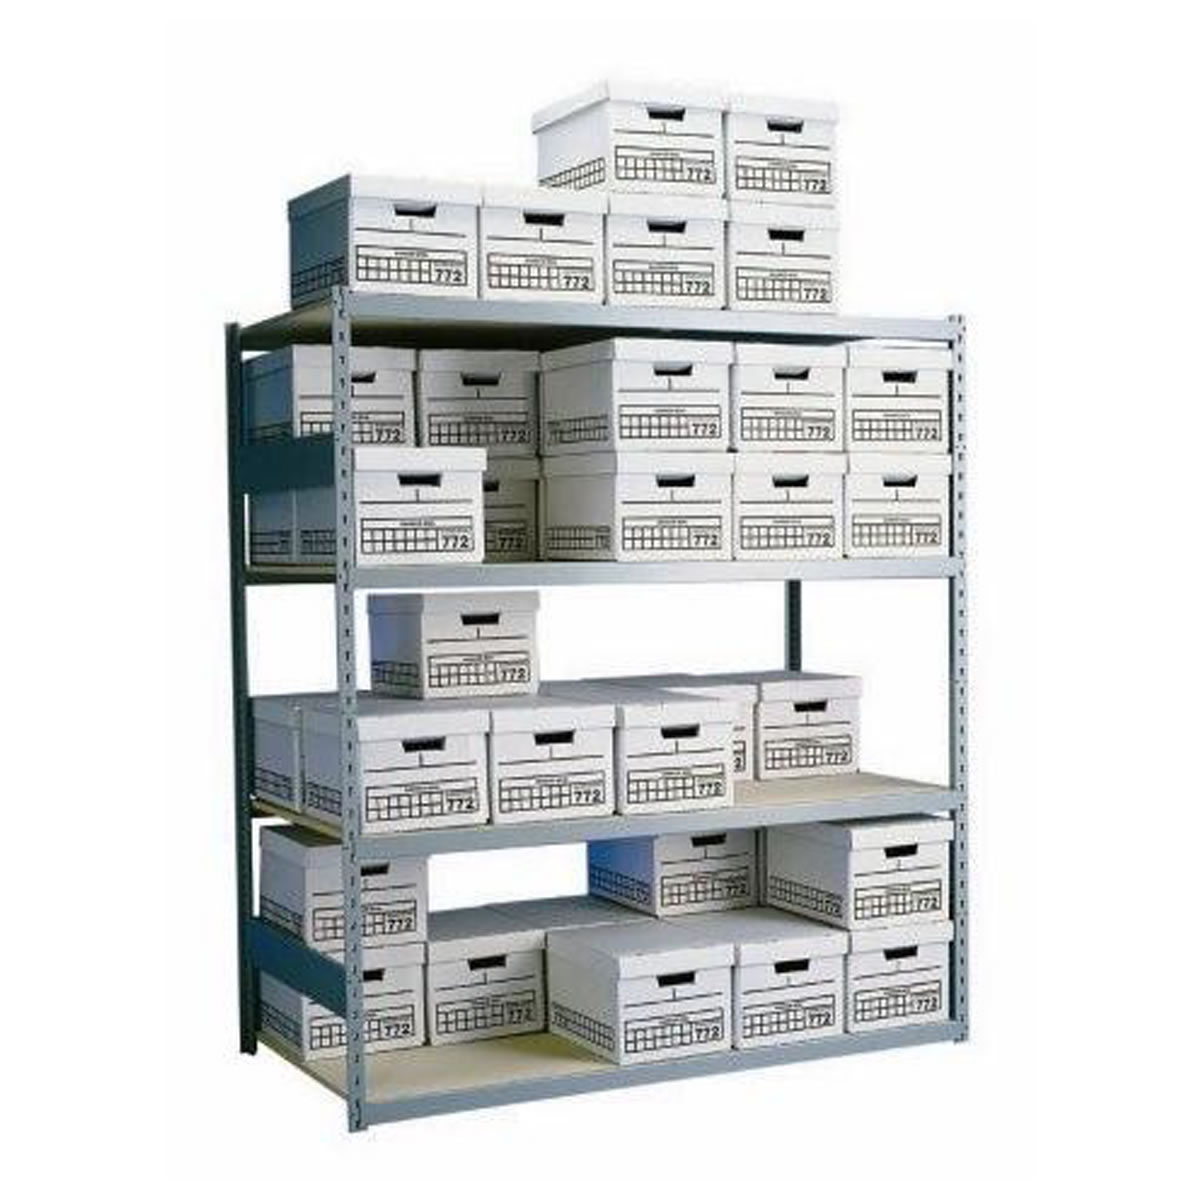 Archive Box Shelving, Long Span Box Shelving